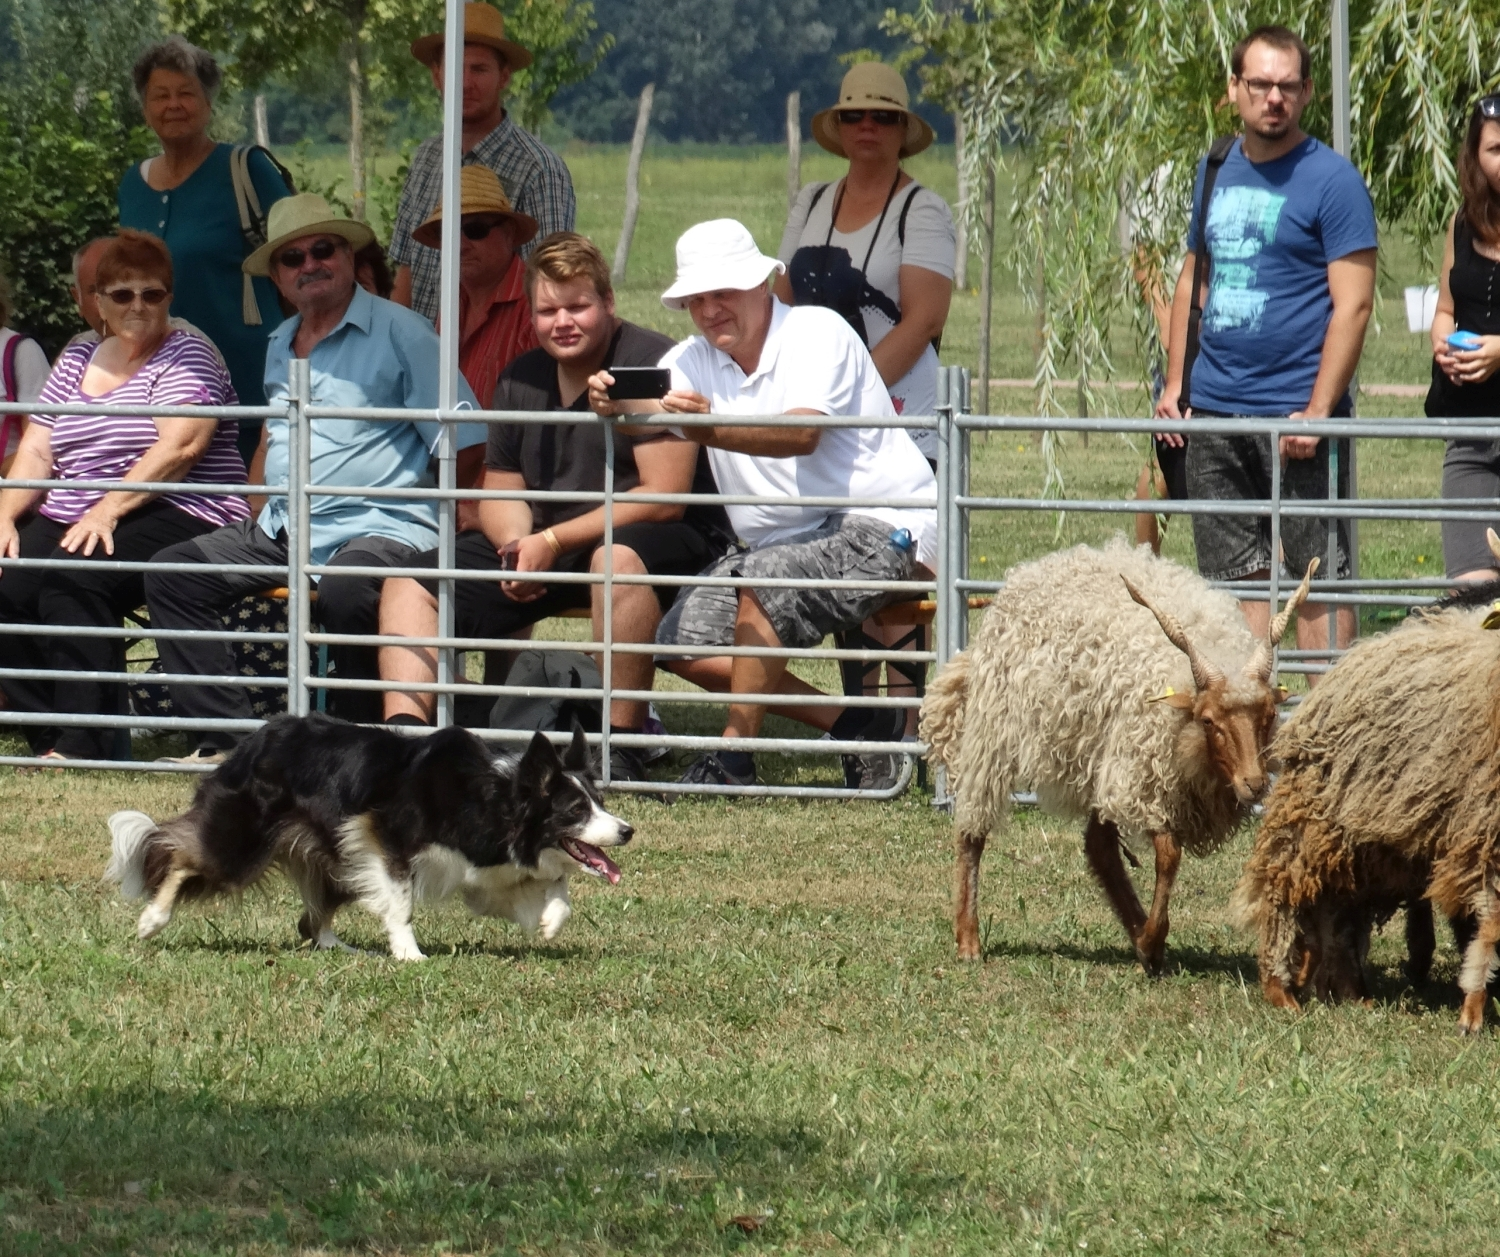 szaporca-tereloverseny-herding-trial-border-collie-nova.jpg